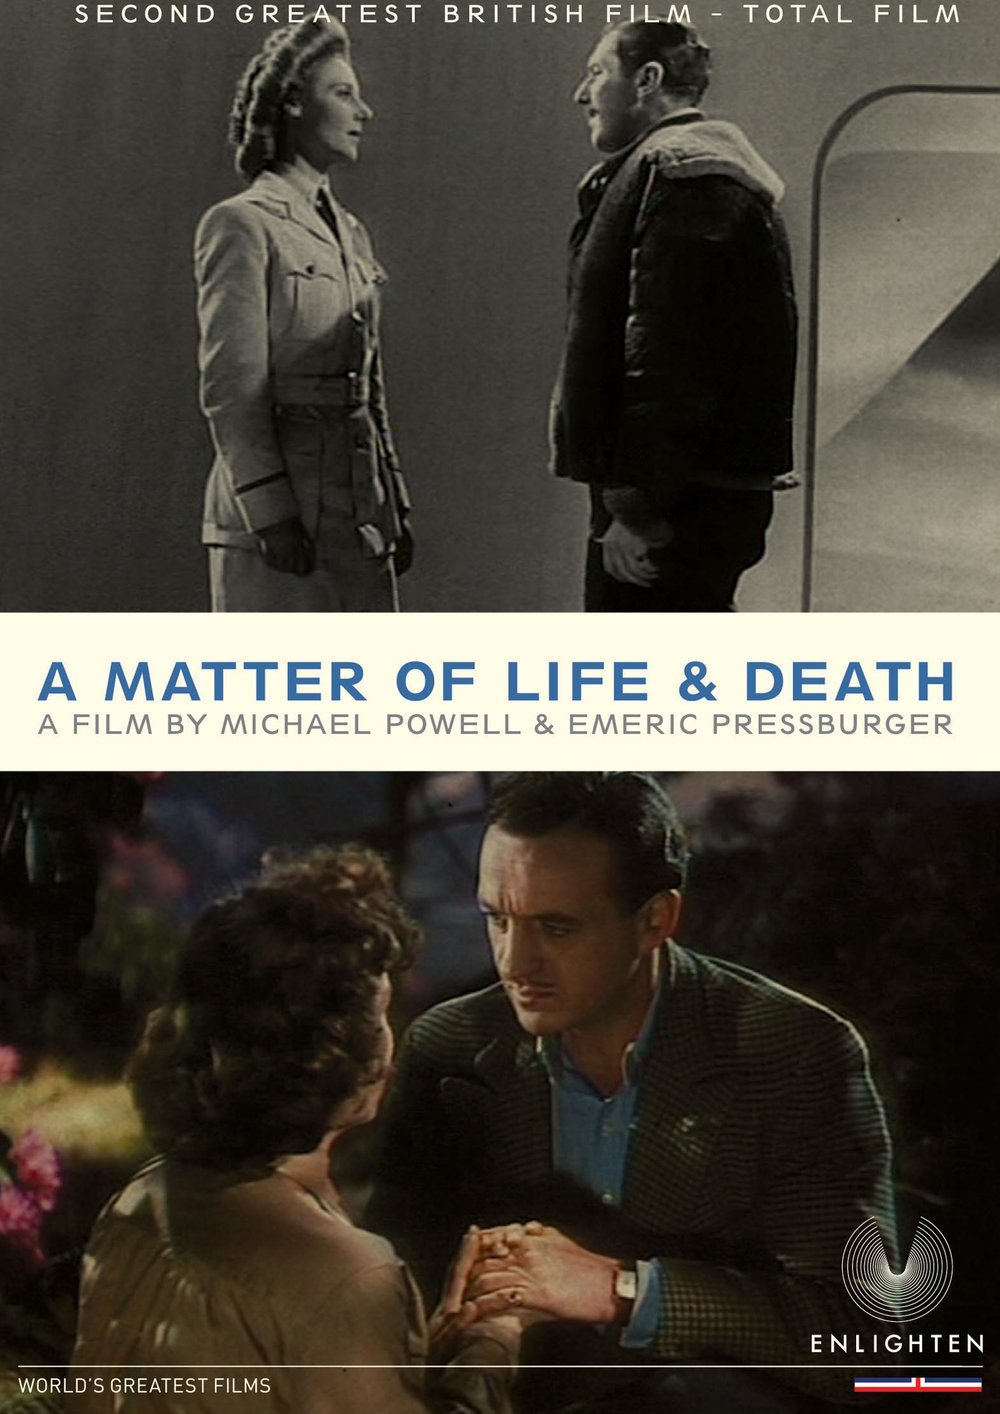 MatterofLife &Death.jpg